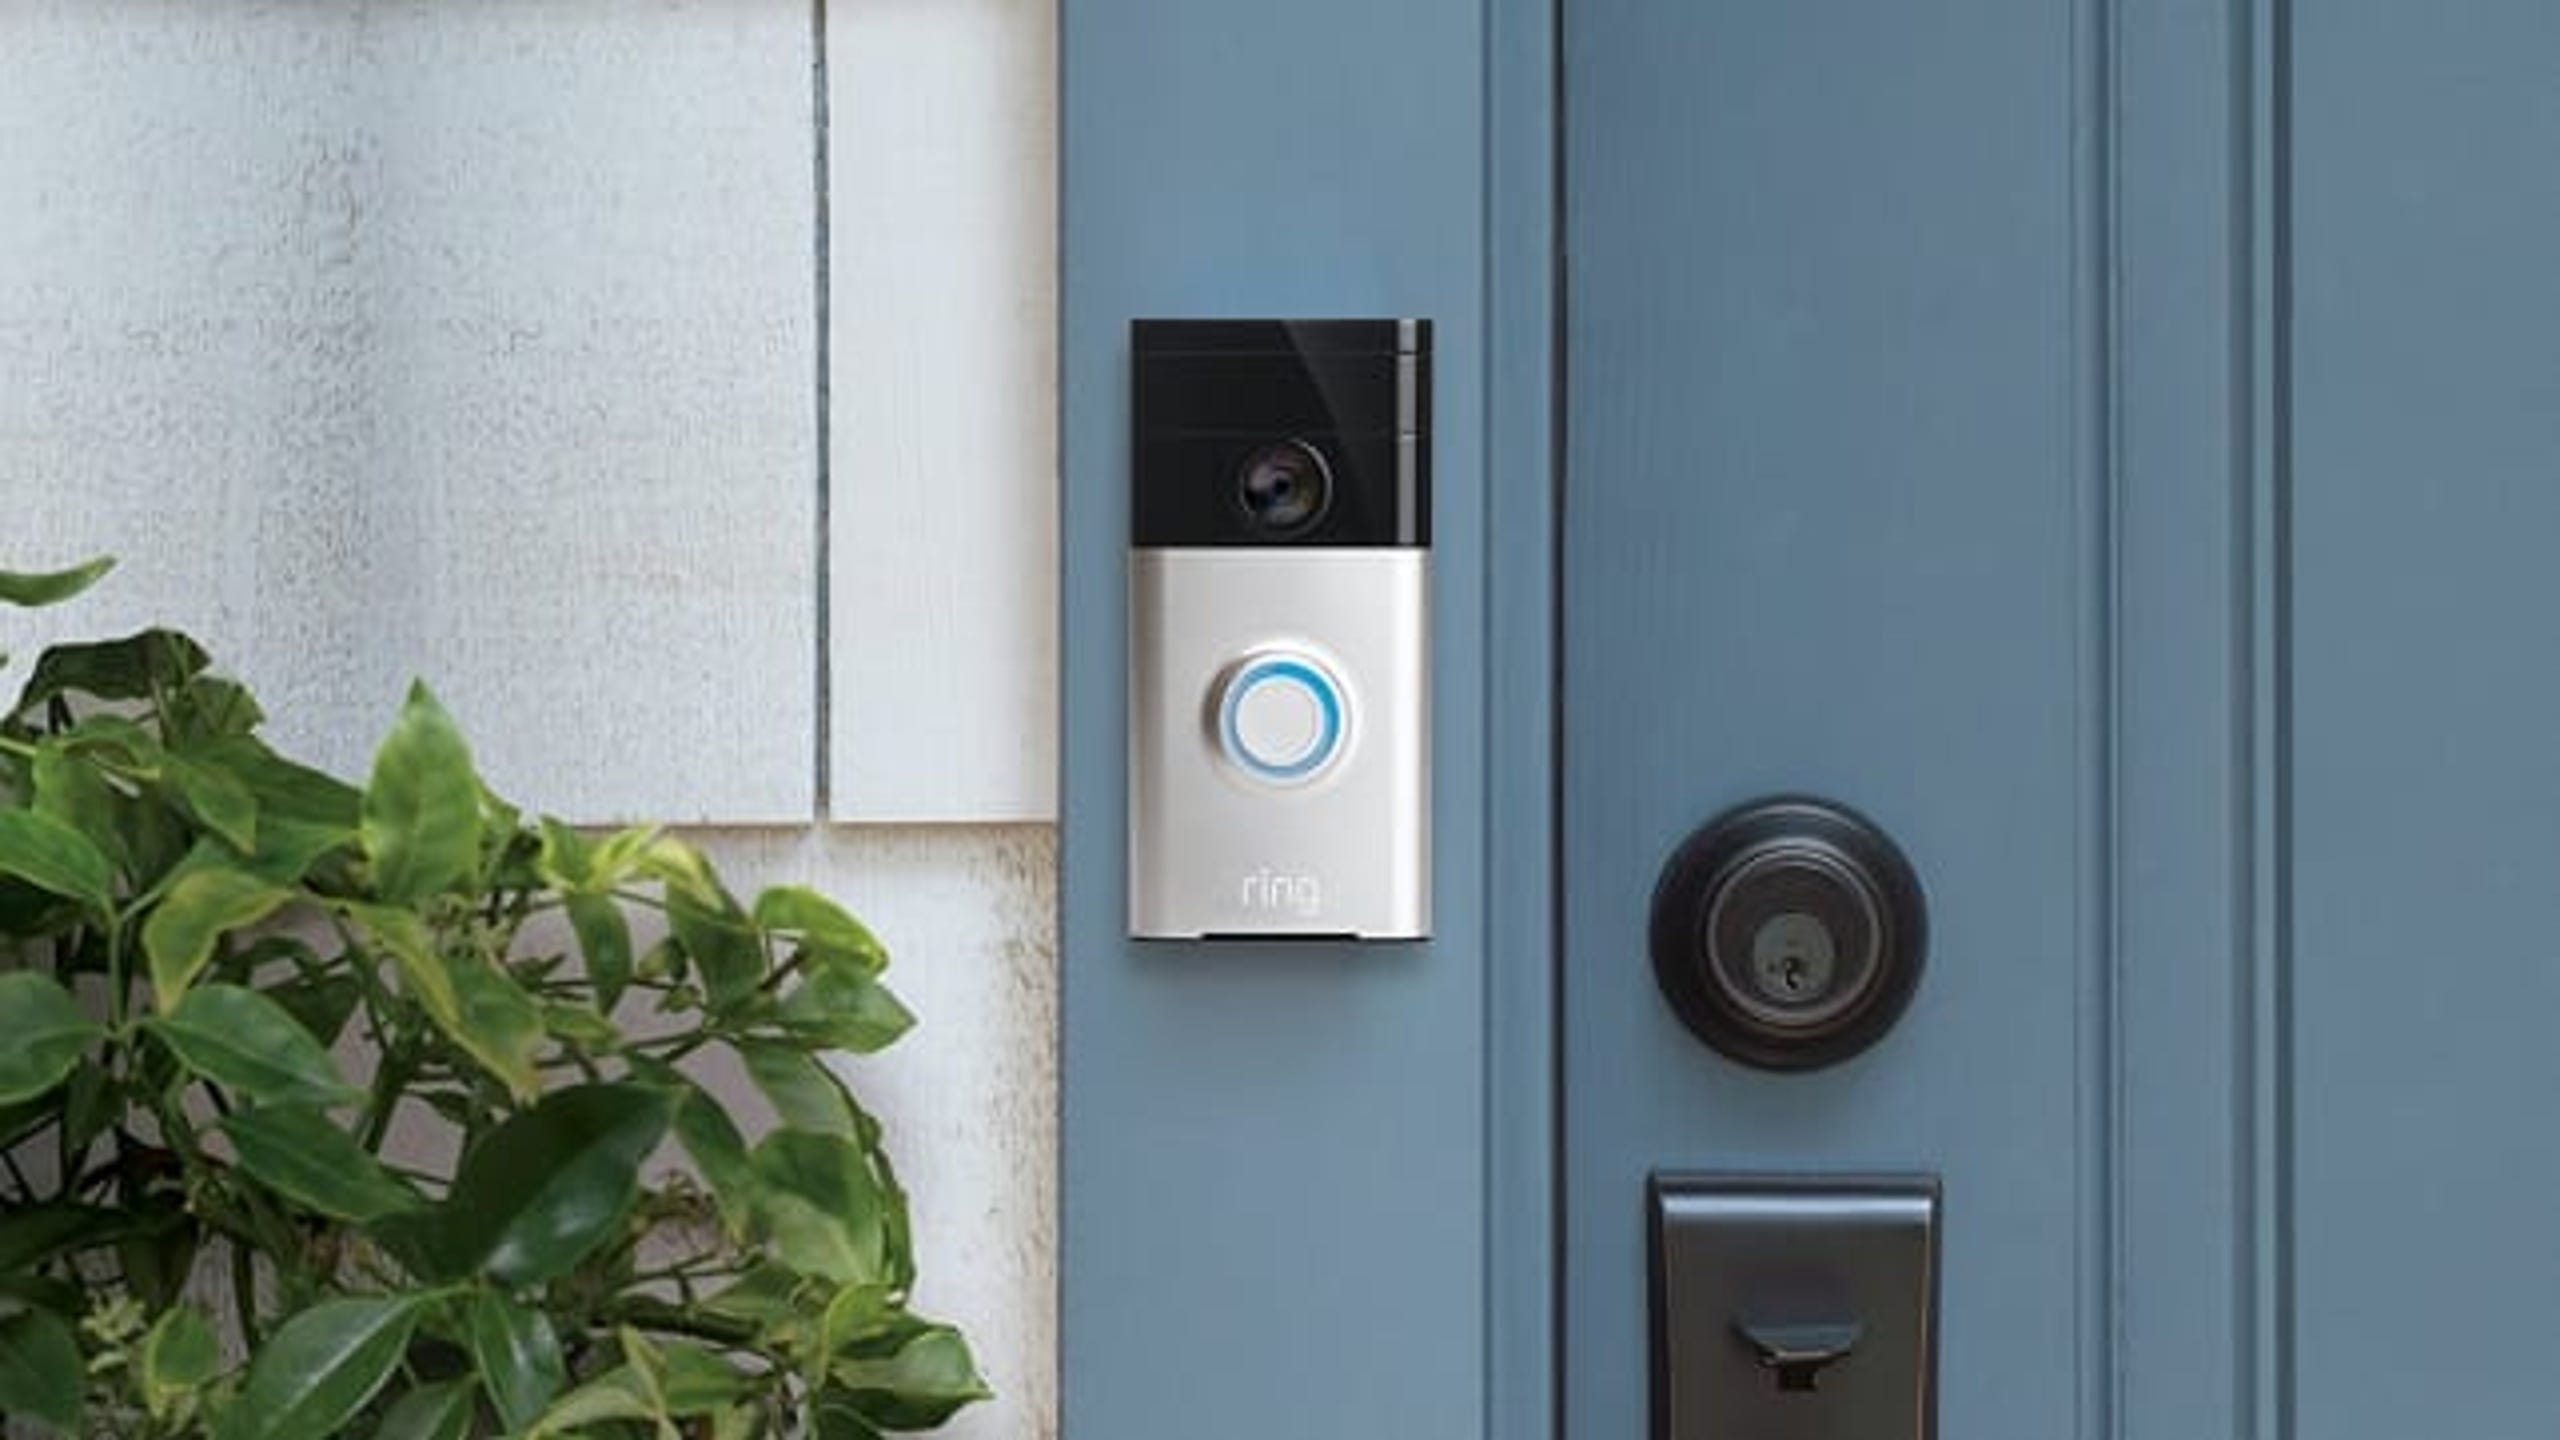 "Want to keep an eye on your home, even when you&rsquo;re not there? A video doorbell allows you to do just that, and the original Ring doorbell is a great option if you don&rsquo;t want to spend too much. (<a href=""https://www.amazon.com/Ring-Wi-Fi-Enabled-Doorbell-Nickel/dp/B00N2ZDXW2/ref=as_li_ss_tl?ie=UTF8&amp;linkCode=ll1&amp;tag=usatgallery-20&amp;linkId=bdb1ff1e4536618154ebe9e42fb22935&amp;language=en_US"">$99.99 on Amazon</a>)"